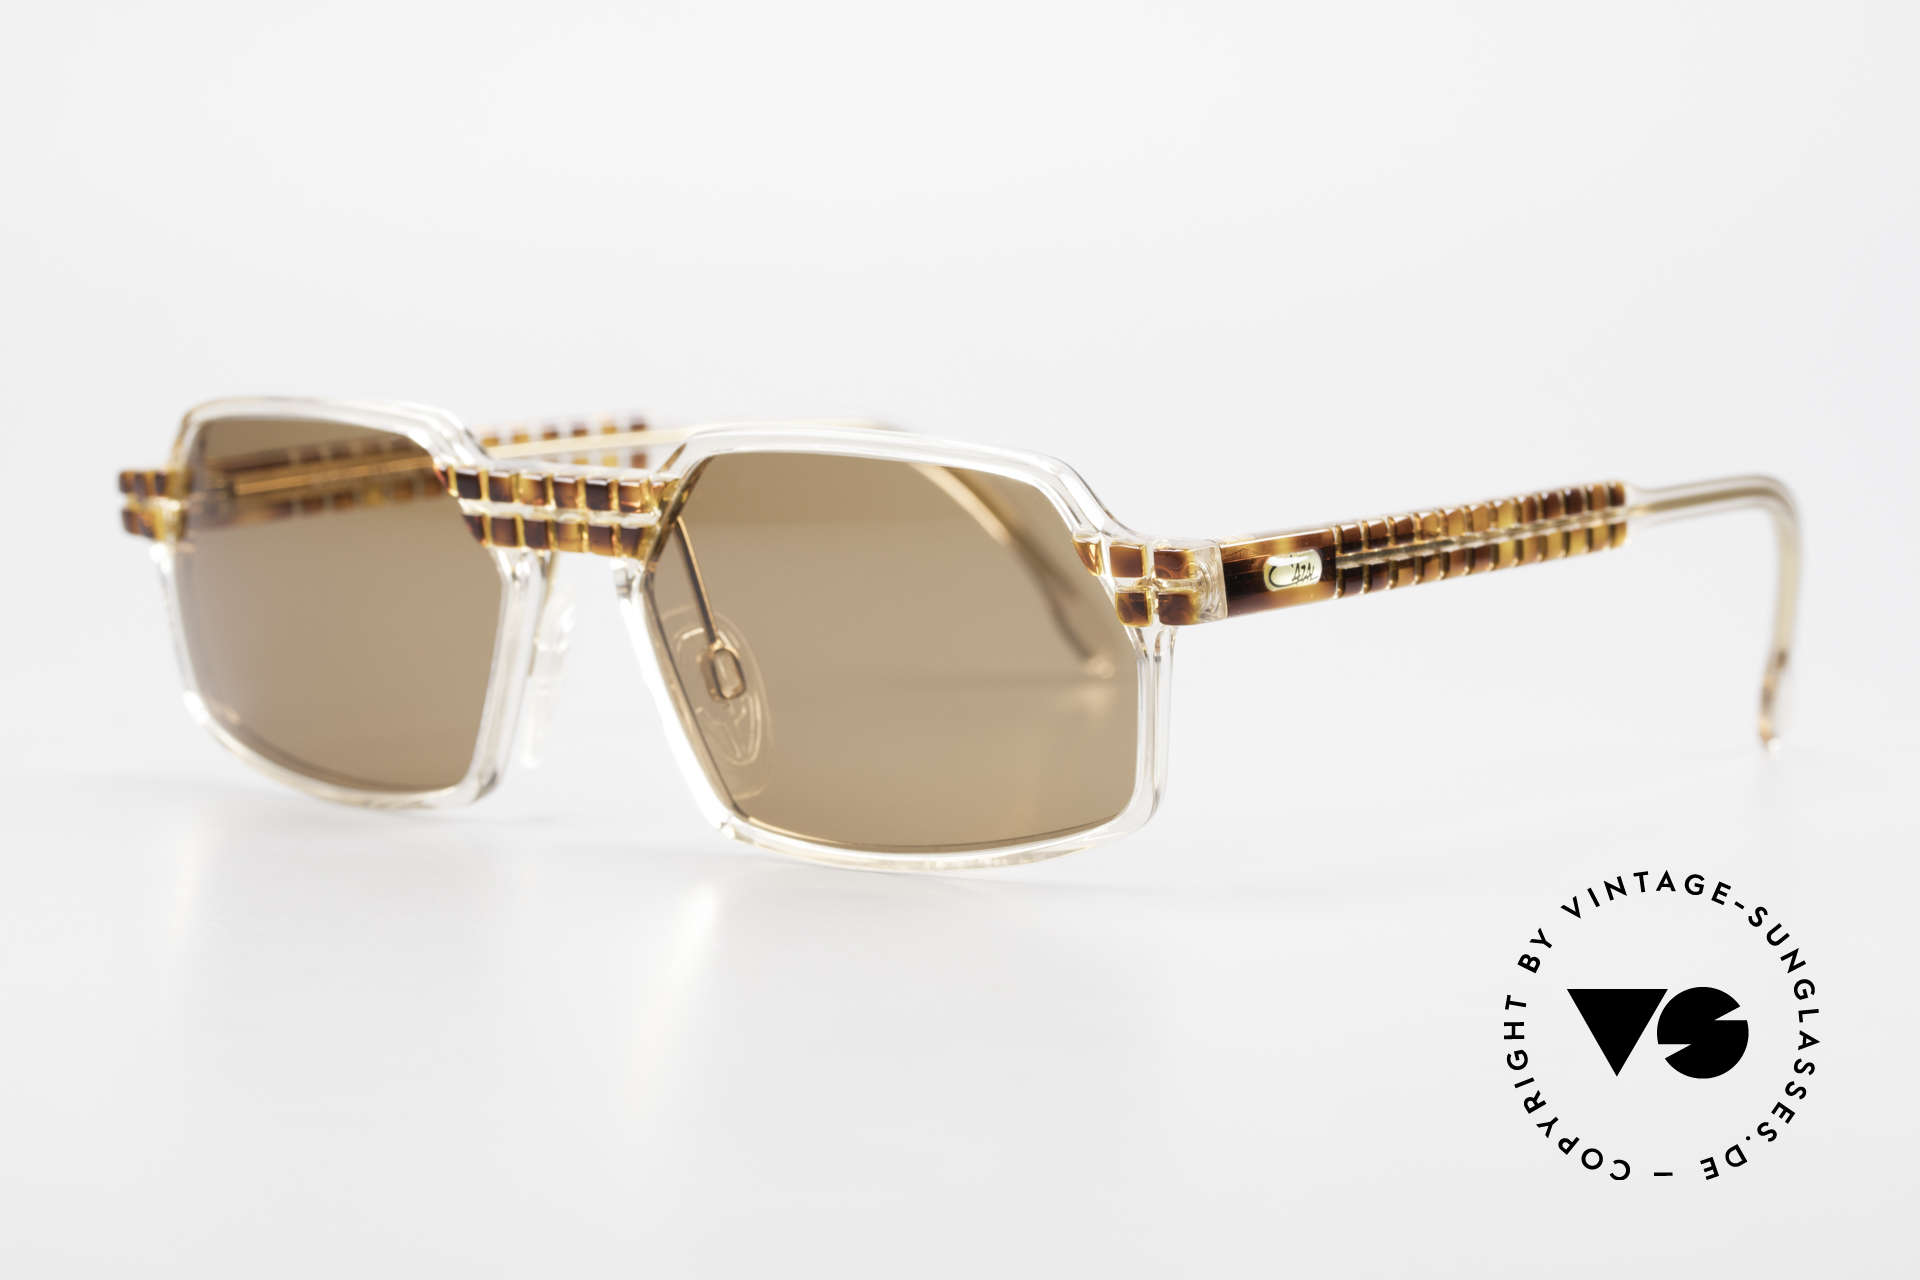 Cazal 511 Limited 90's Cazal Sunglasses, special edition with crystal clear frame - truly unique!, Made for Men and Women